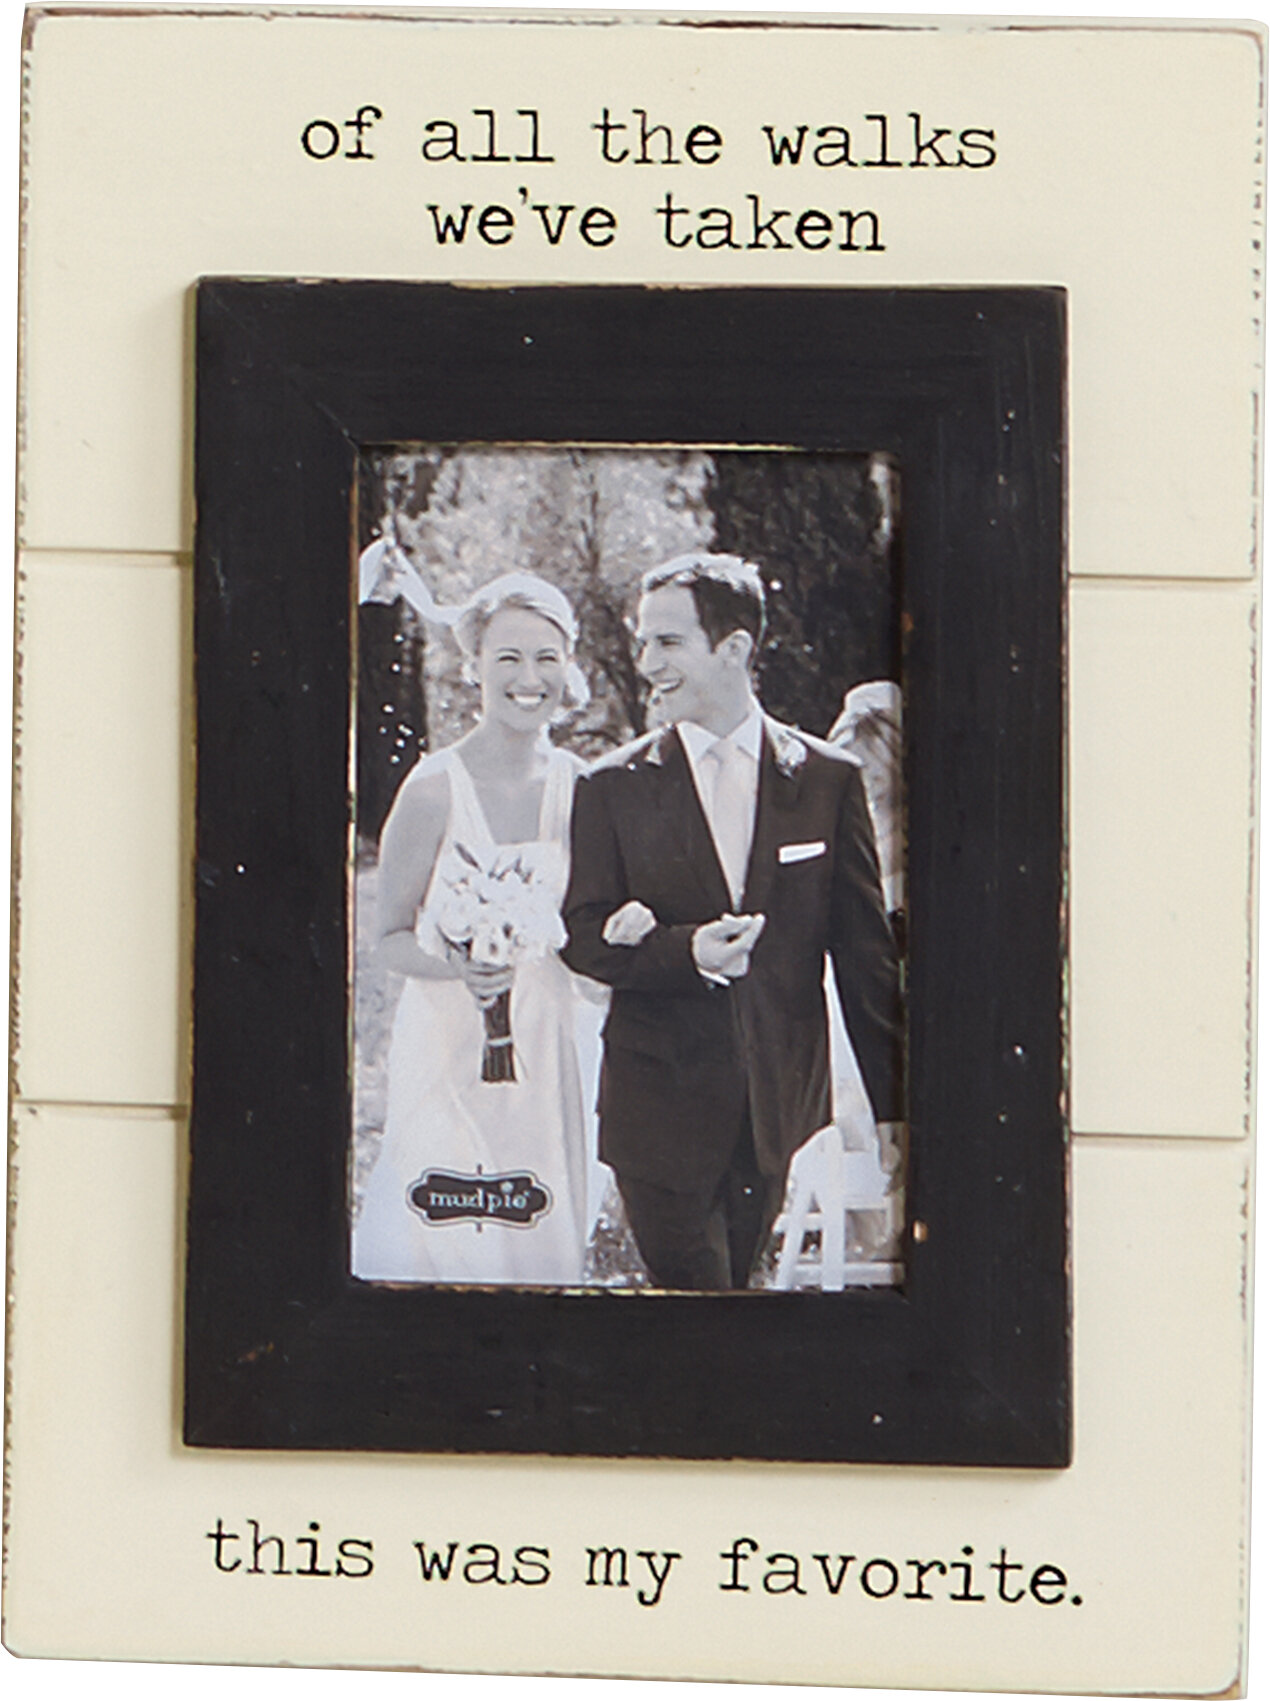 Mud pie picture frames youll love wayfair wedding of all the walks picture frame jeuxipadfo Image collections